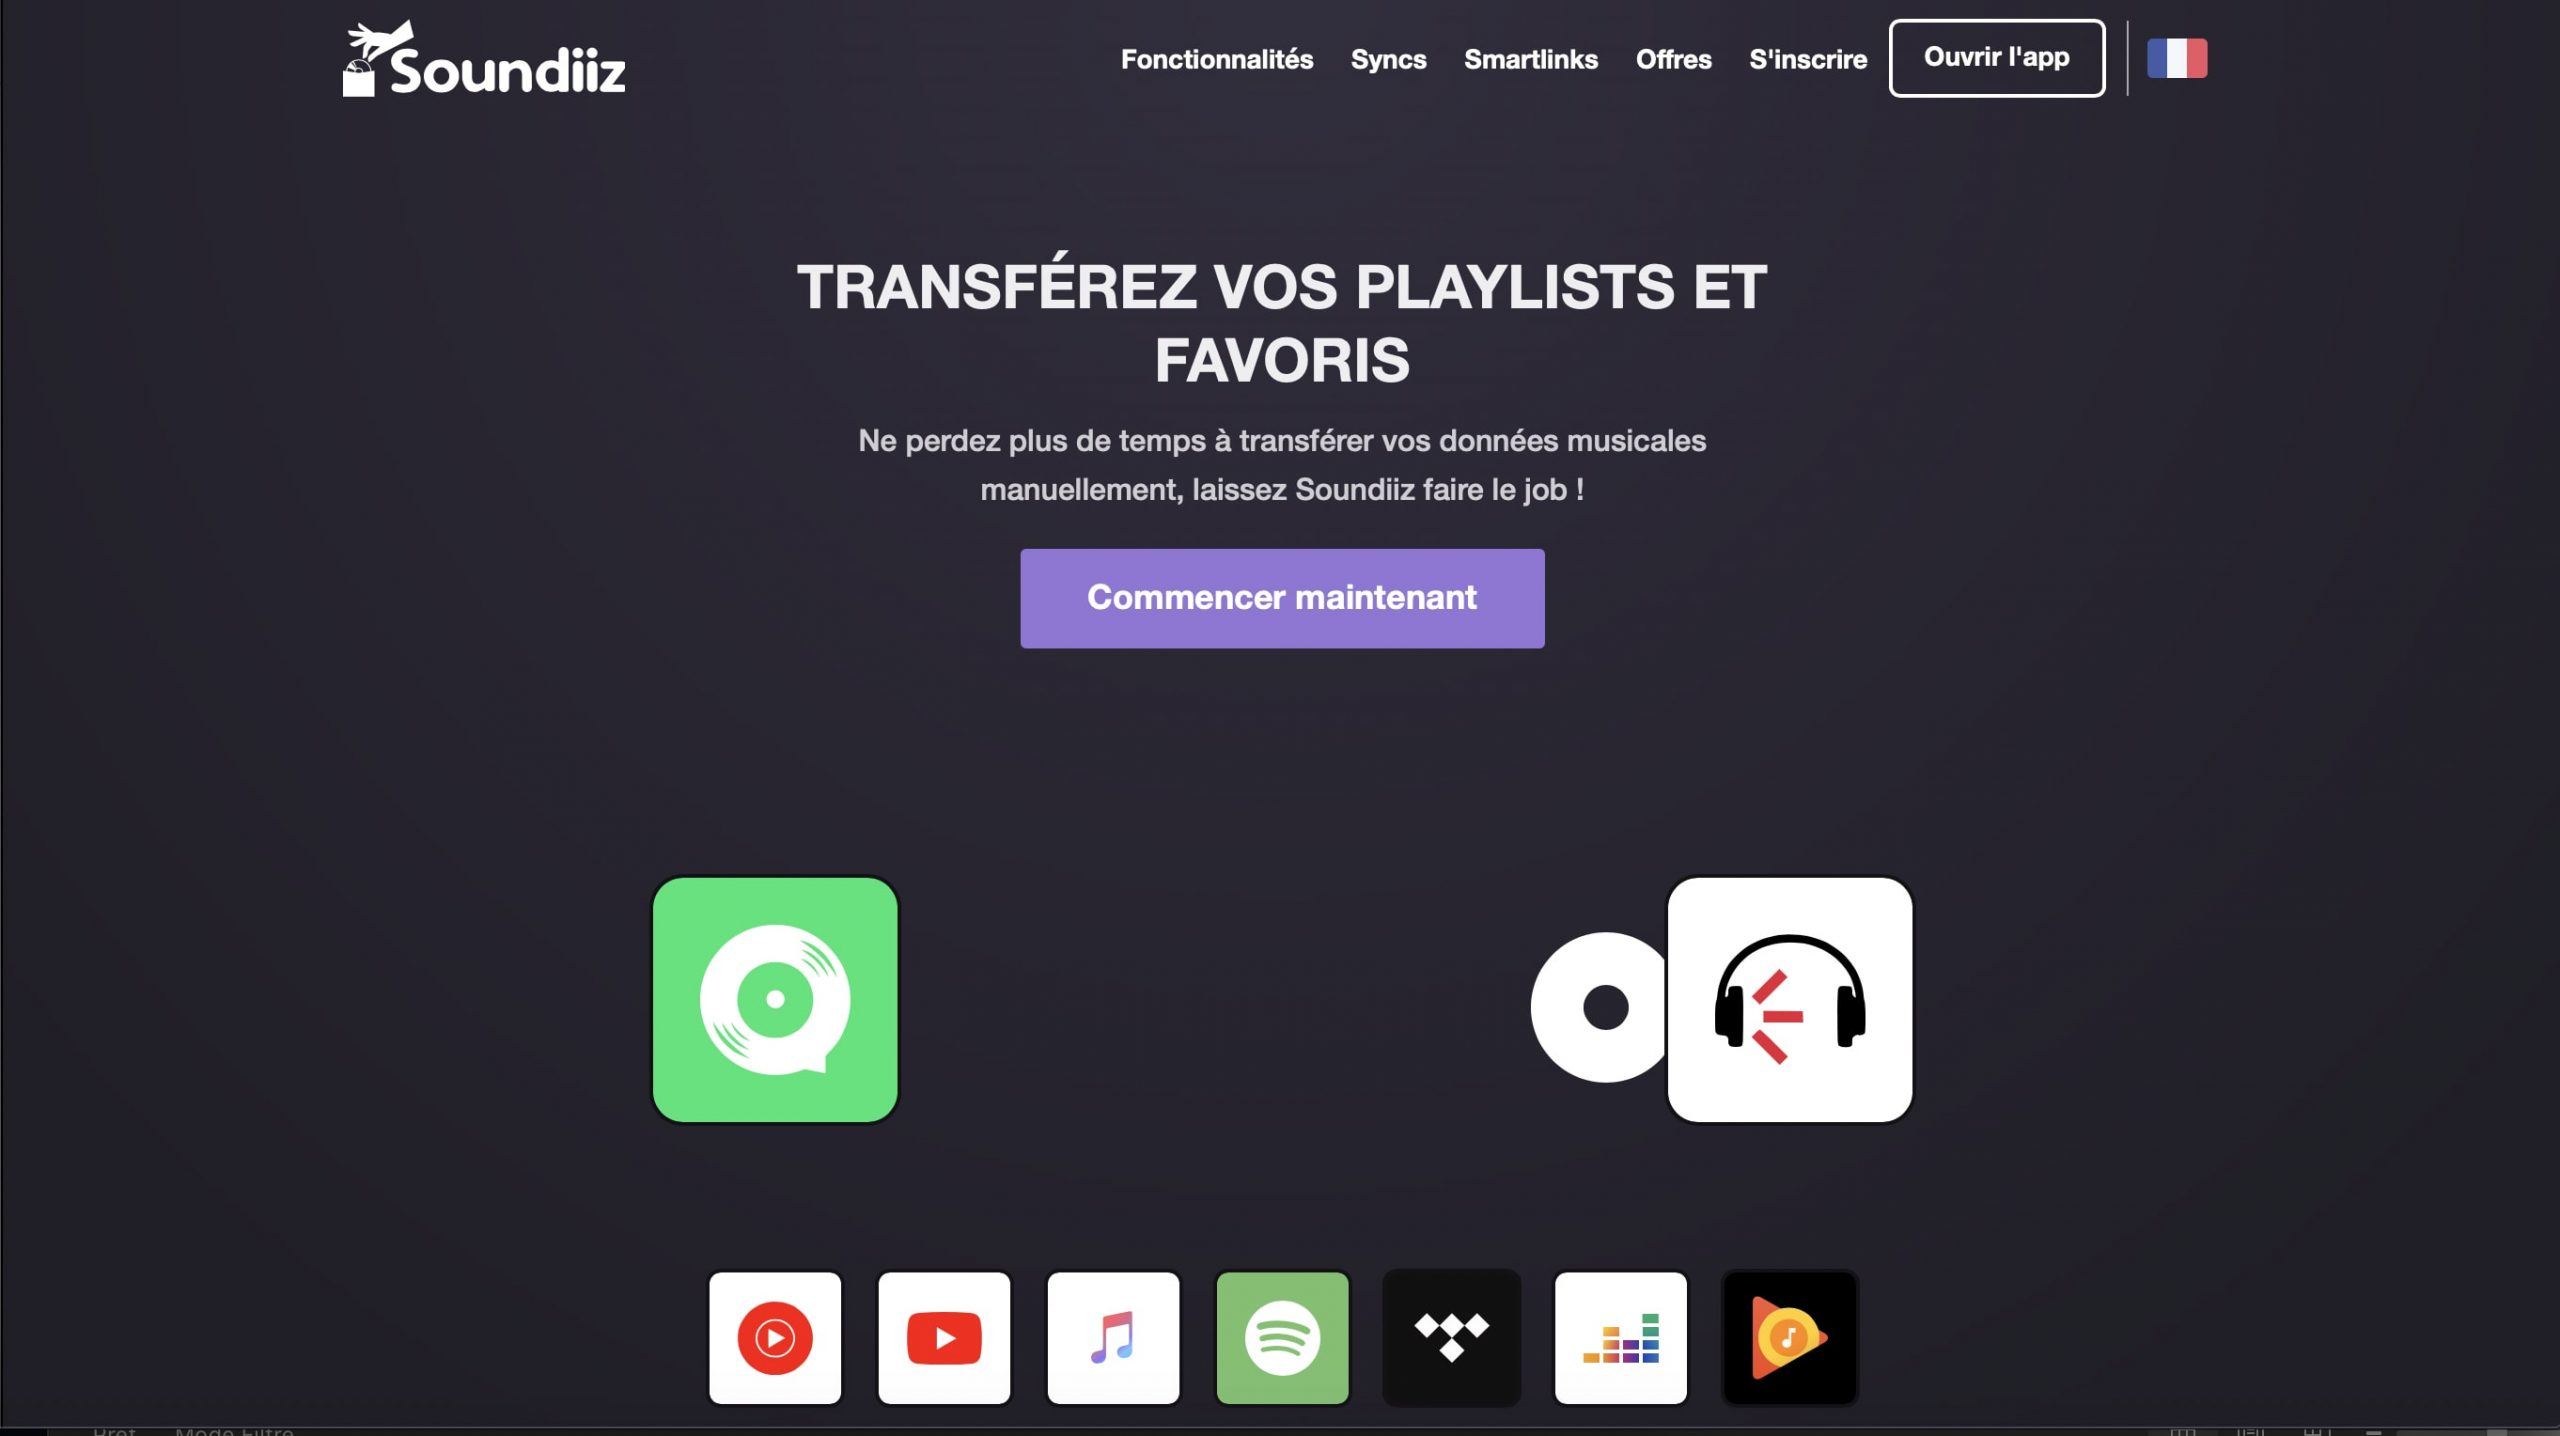 Easily transfer and manage your playlists with Soundiiz